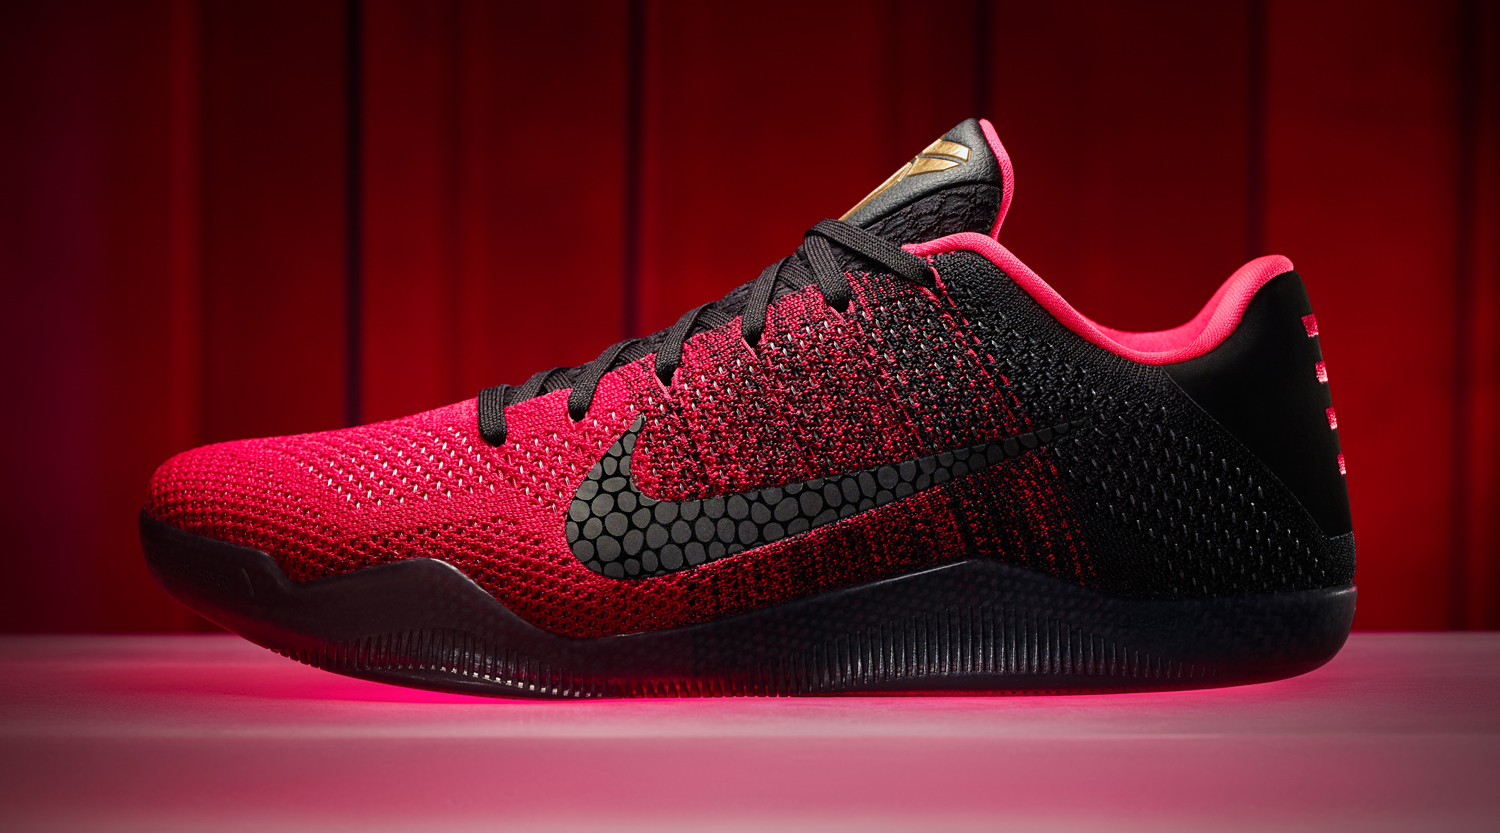 low priced ab56d 8eb4c Achilles Heel Kobe 11s Images via Nike